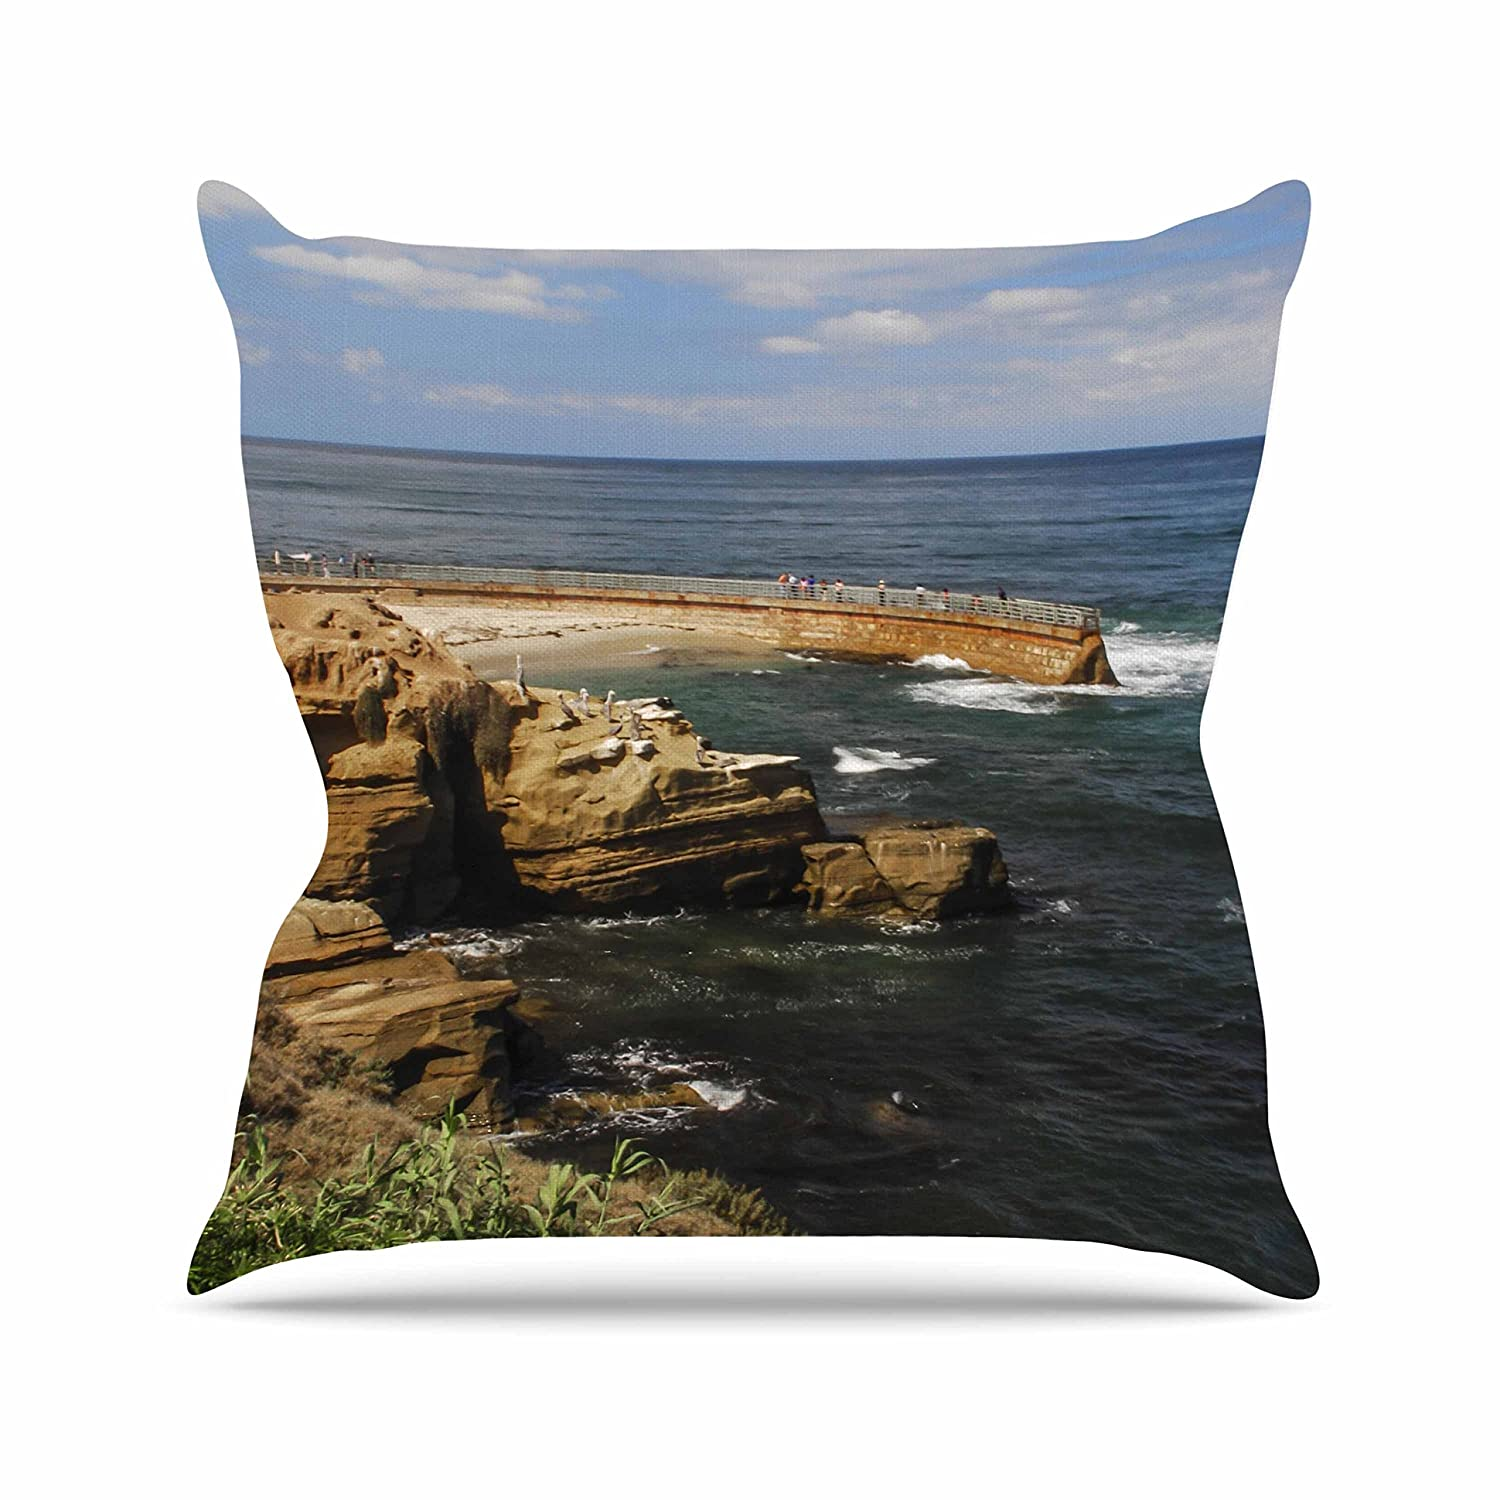 Kess InHouse Nick Nareshni Ocean Jetty Blue Brown Throw Pillow 26 by 26